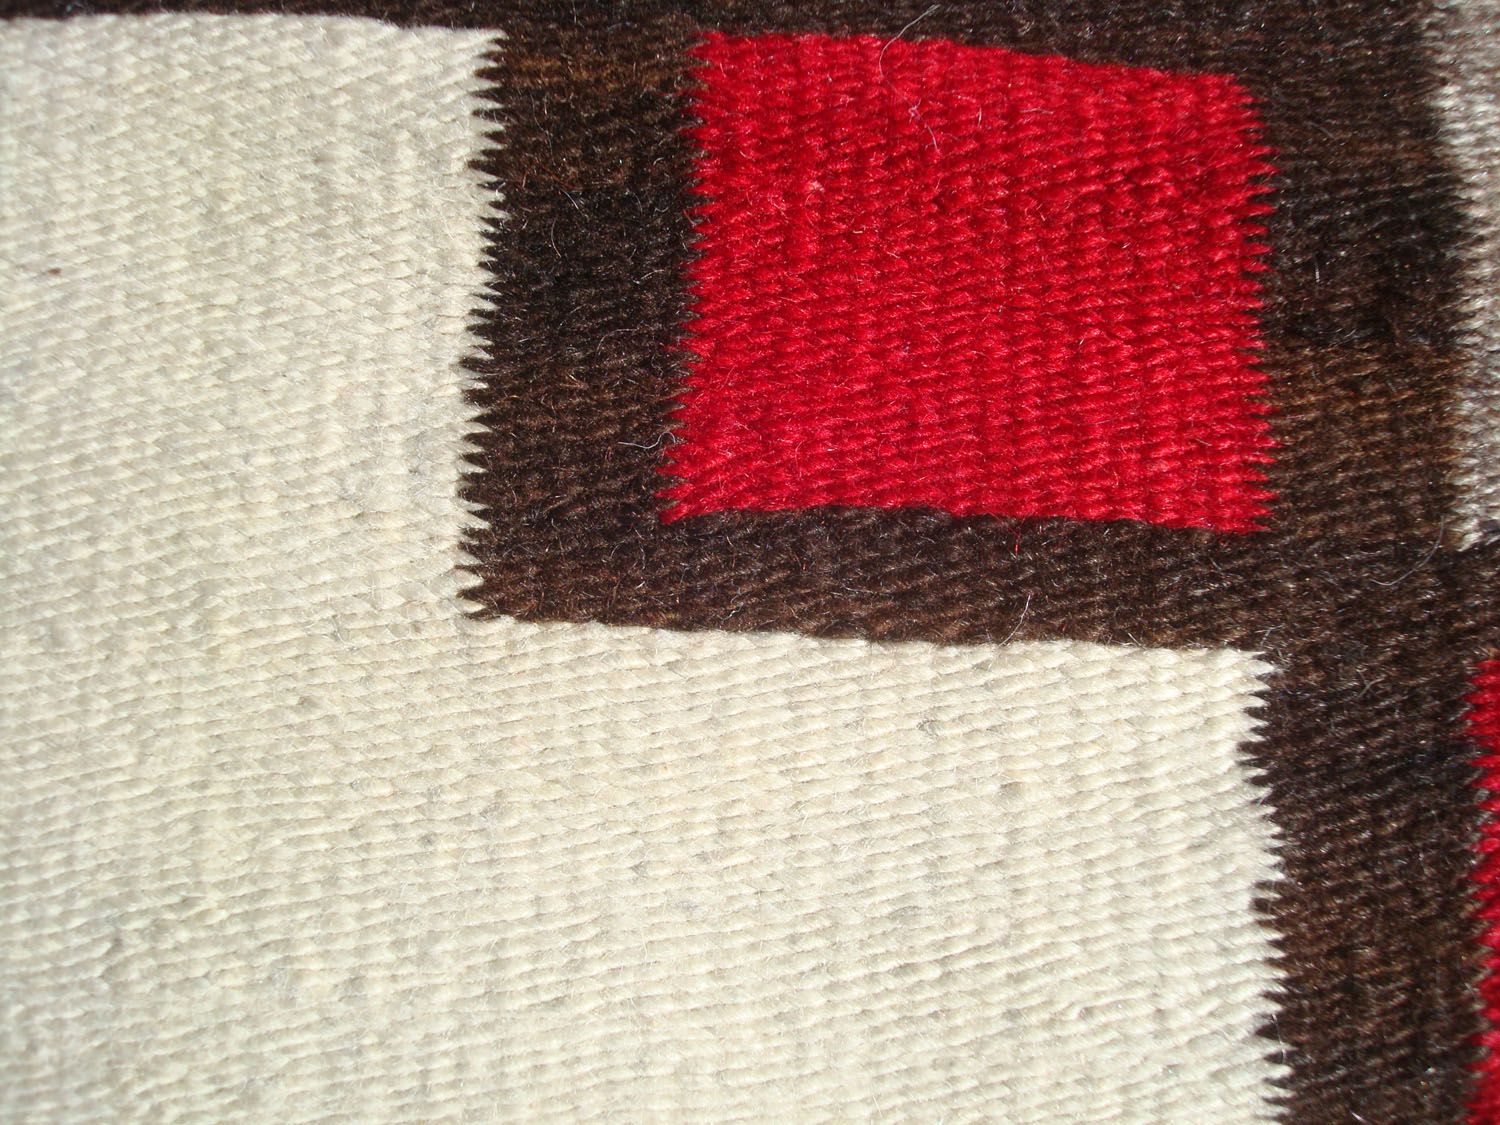 ... Native American Indian Vintage Textiles, And Navajo Textiles And Rugs,  A Very Beautiful Transitional